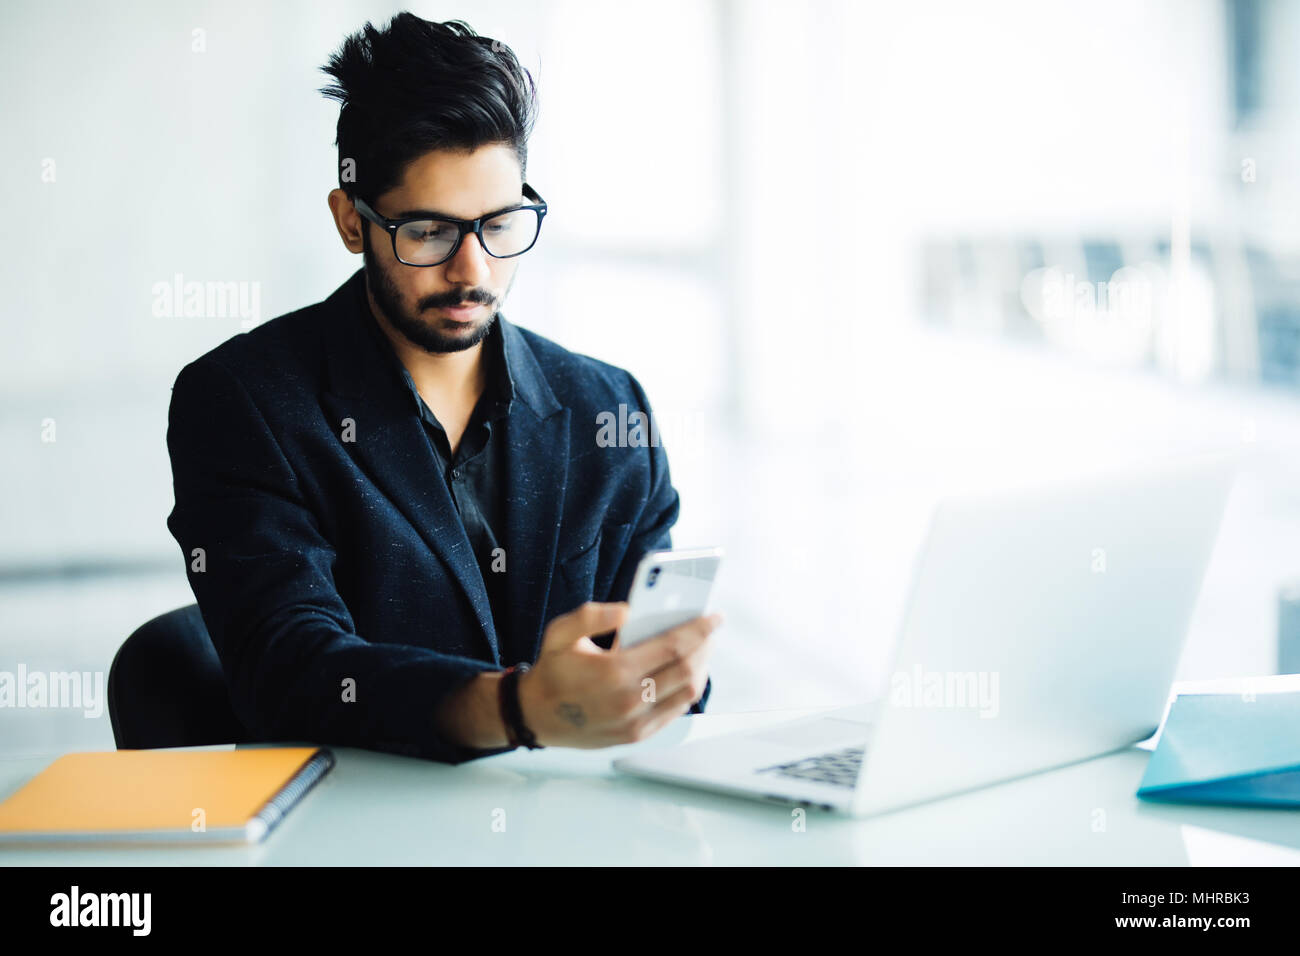 Indian CEO of company in his business office at desk, reading text on smartphone - Stock Image